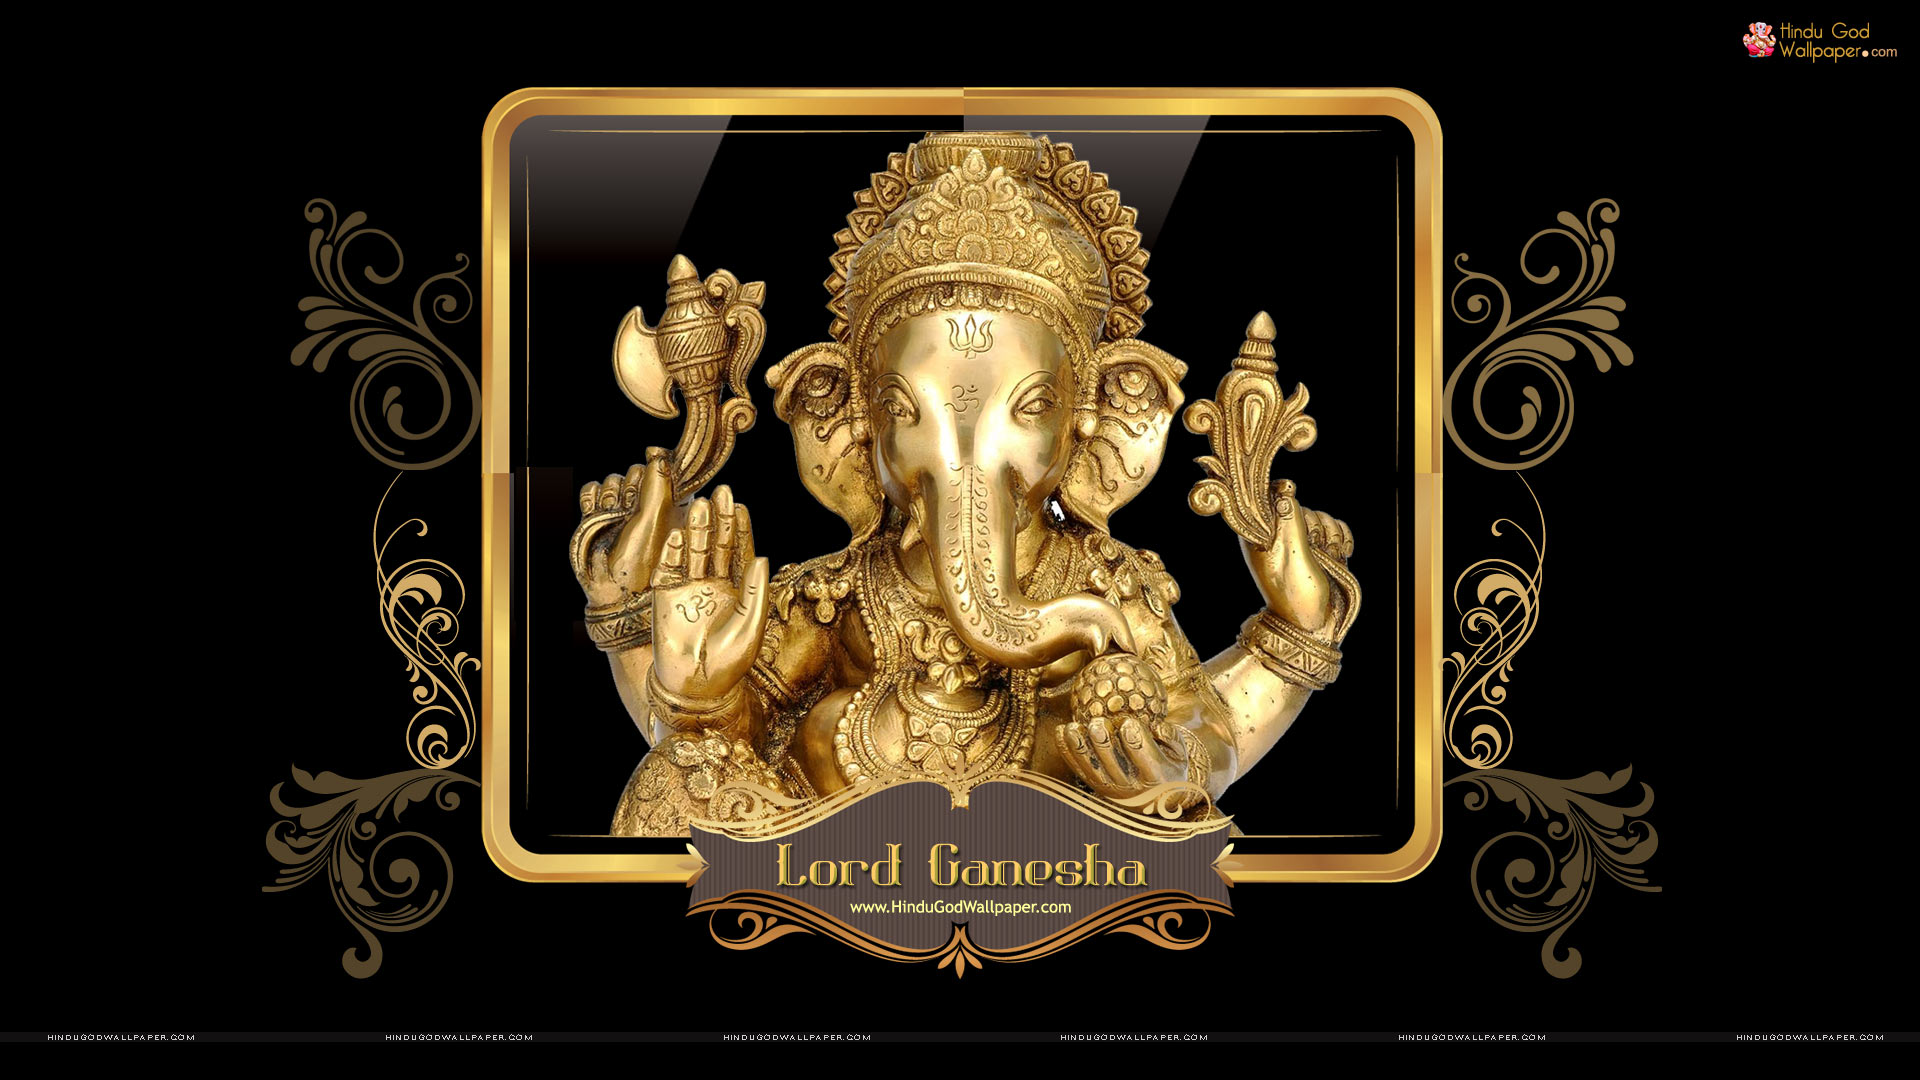 Lord Ganesha Hd Wallpapers: Hindu God HD Wallpapers 1080p